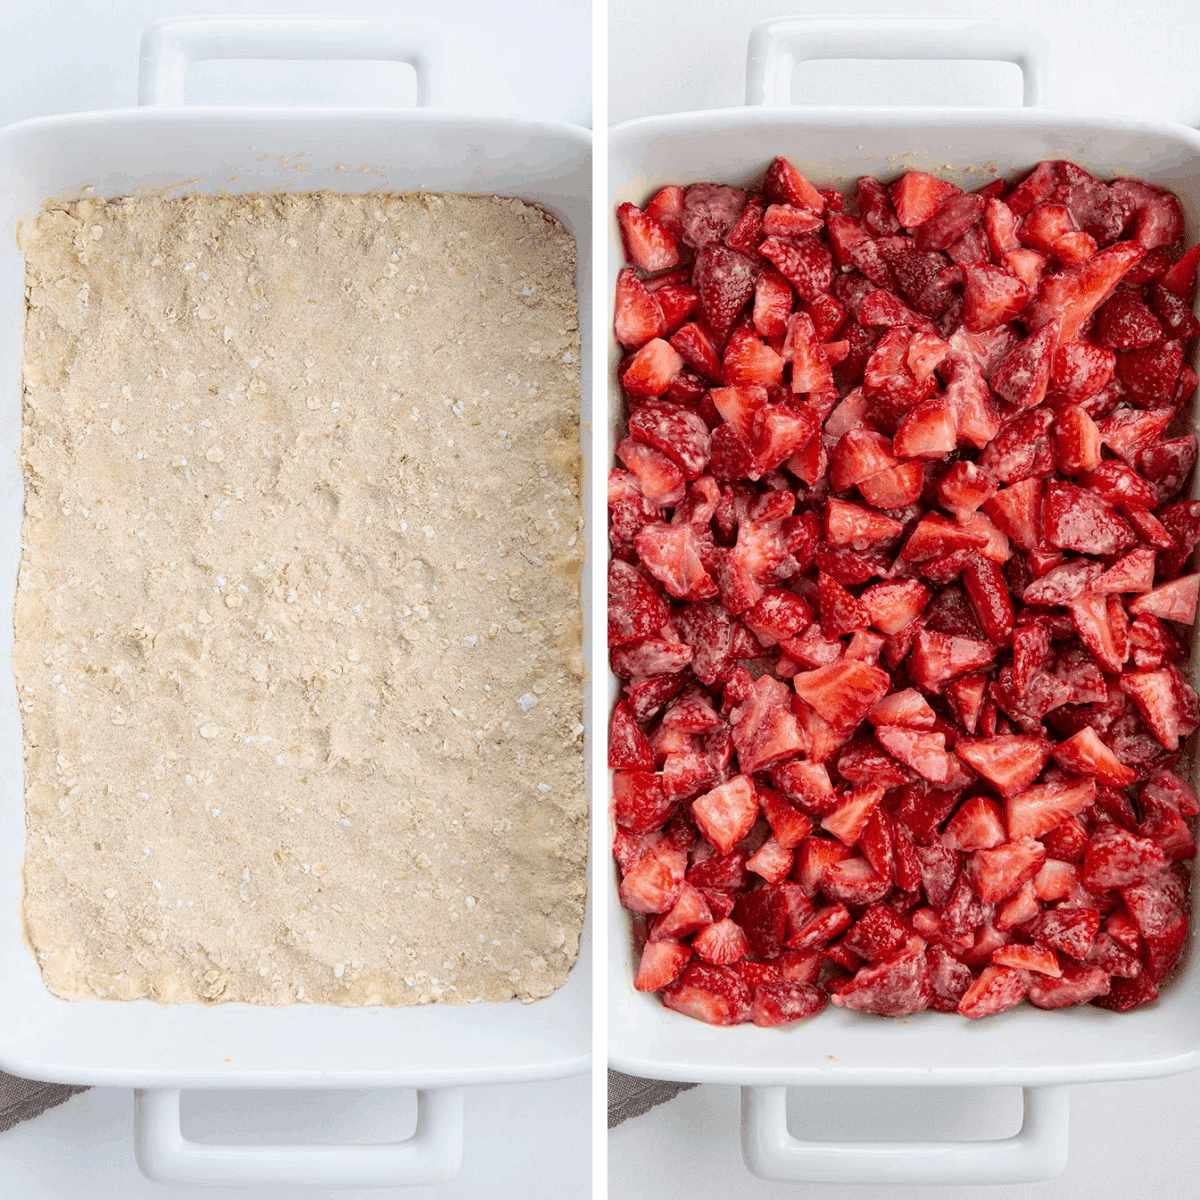 Process Images for Layers of Strawberry Crisp